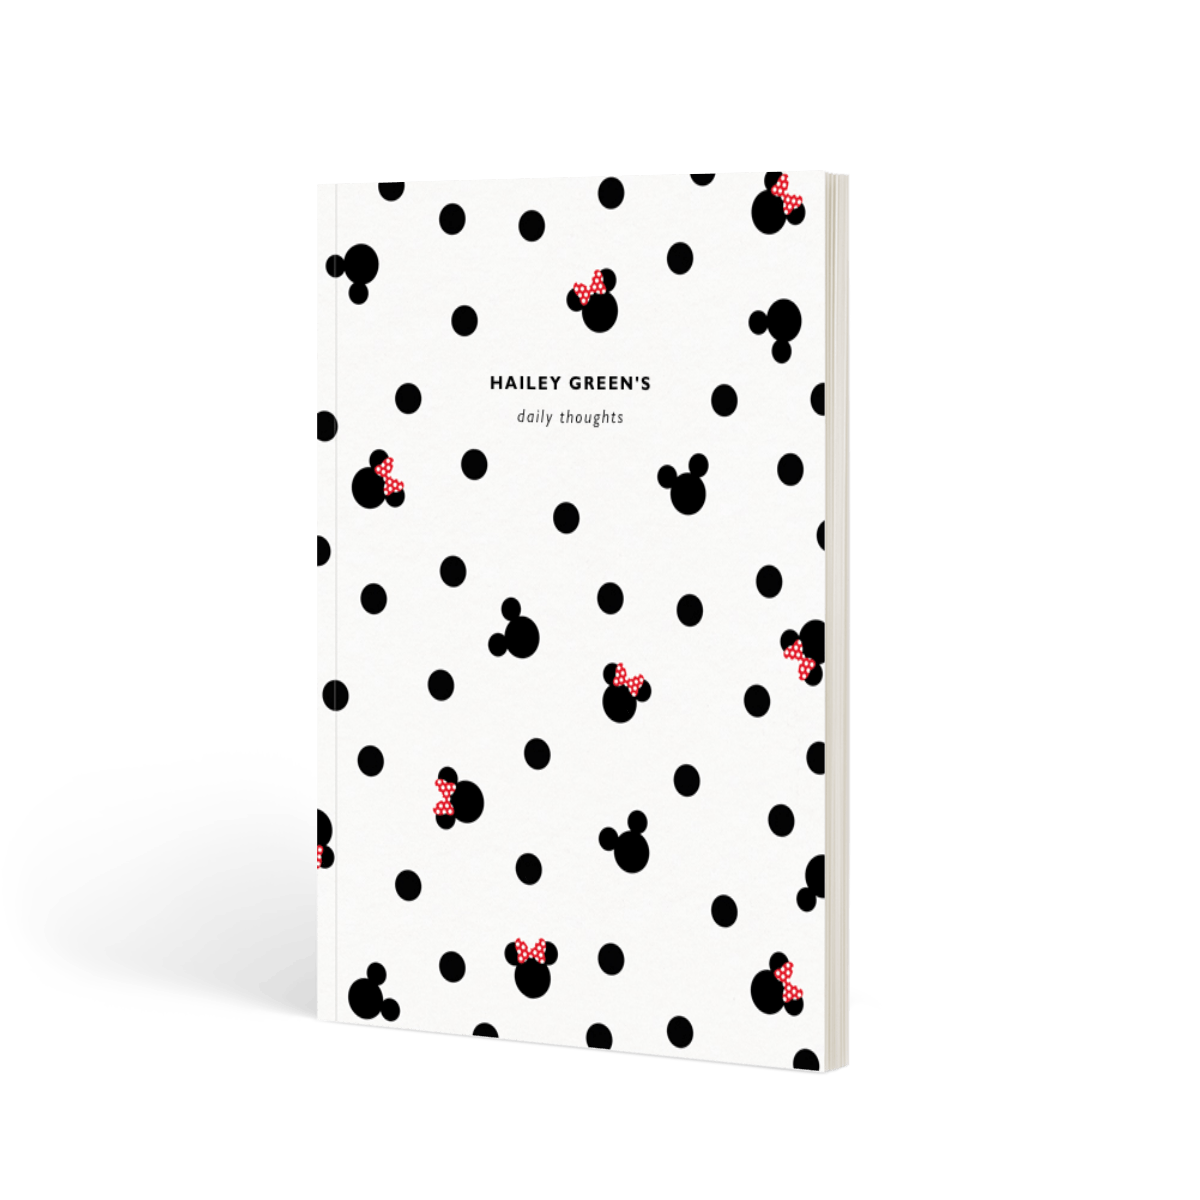 Https%3a%2f%2fwww.papier.com%2fproduct image%2f36015%2f6%2fmickey minnie mouse 9013 front 1567172090.png?ixlib=rb 1.1